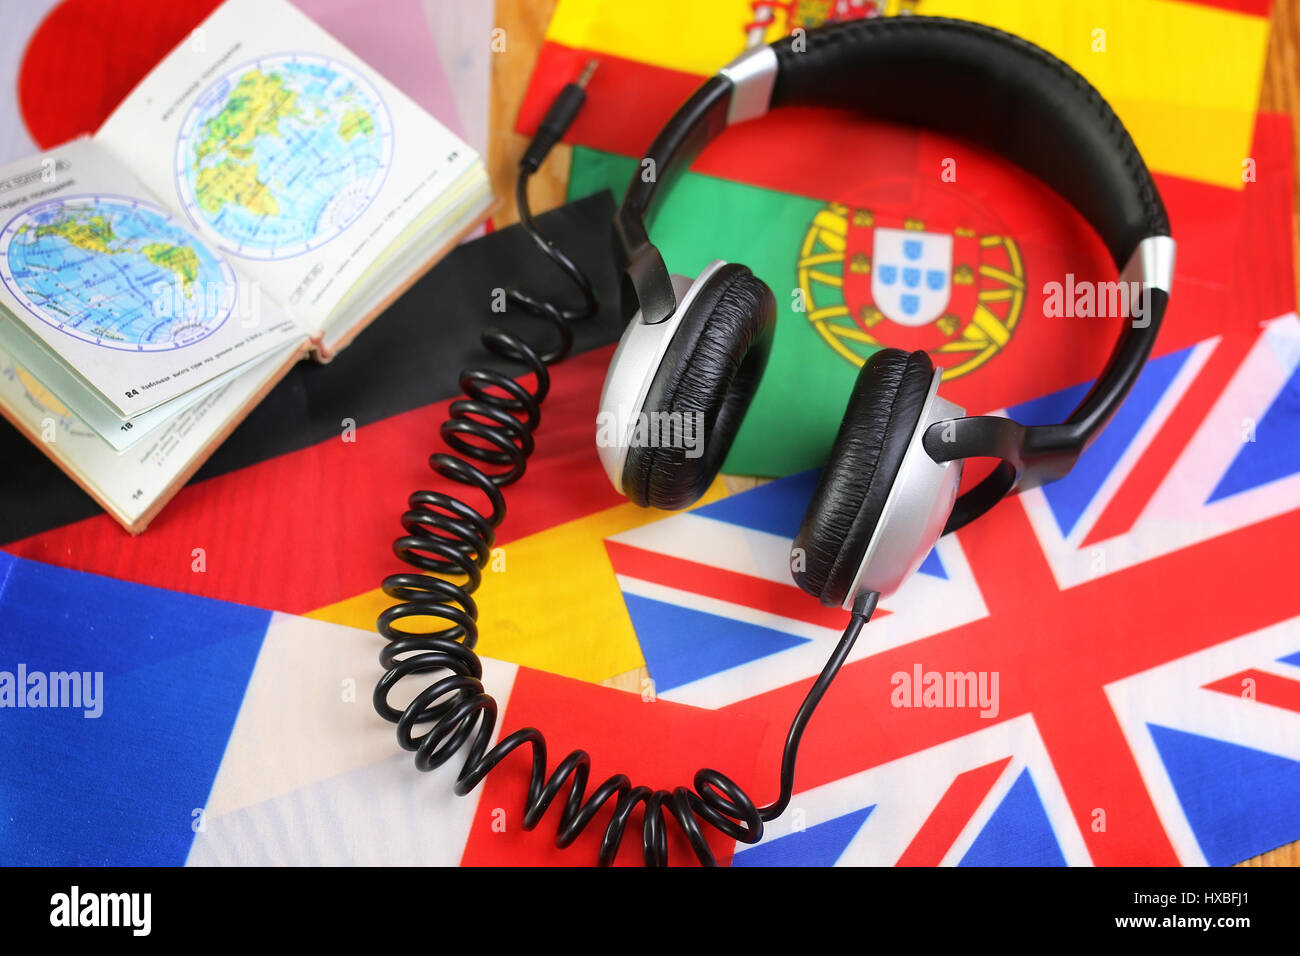 course language headphone and flag on a table Stock Photo